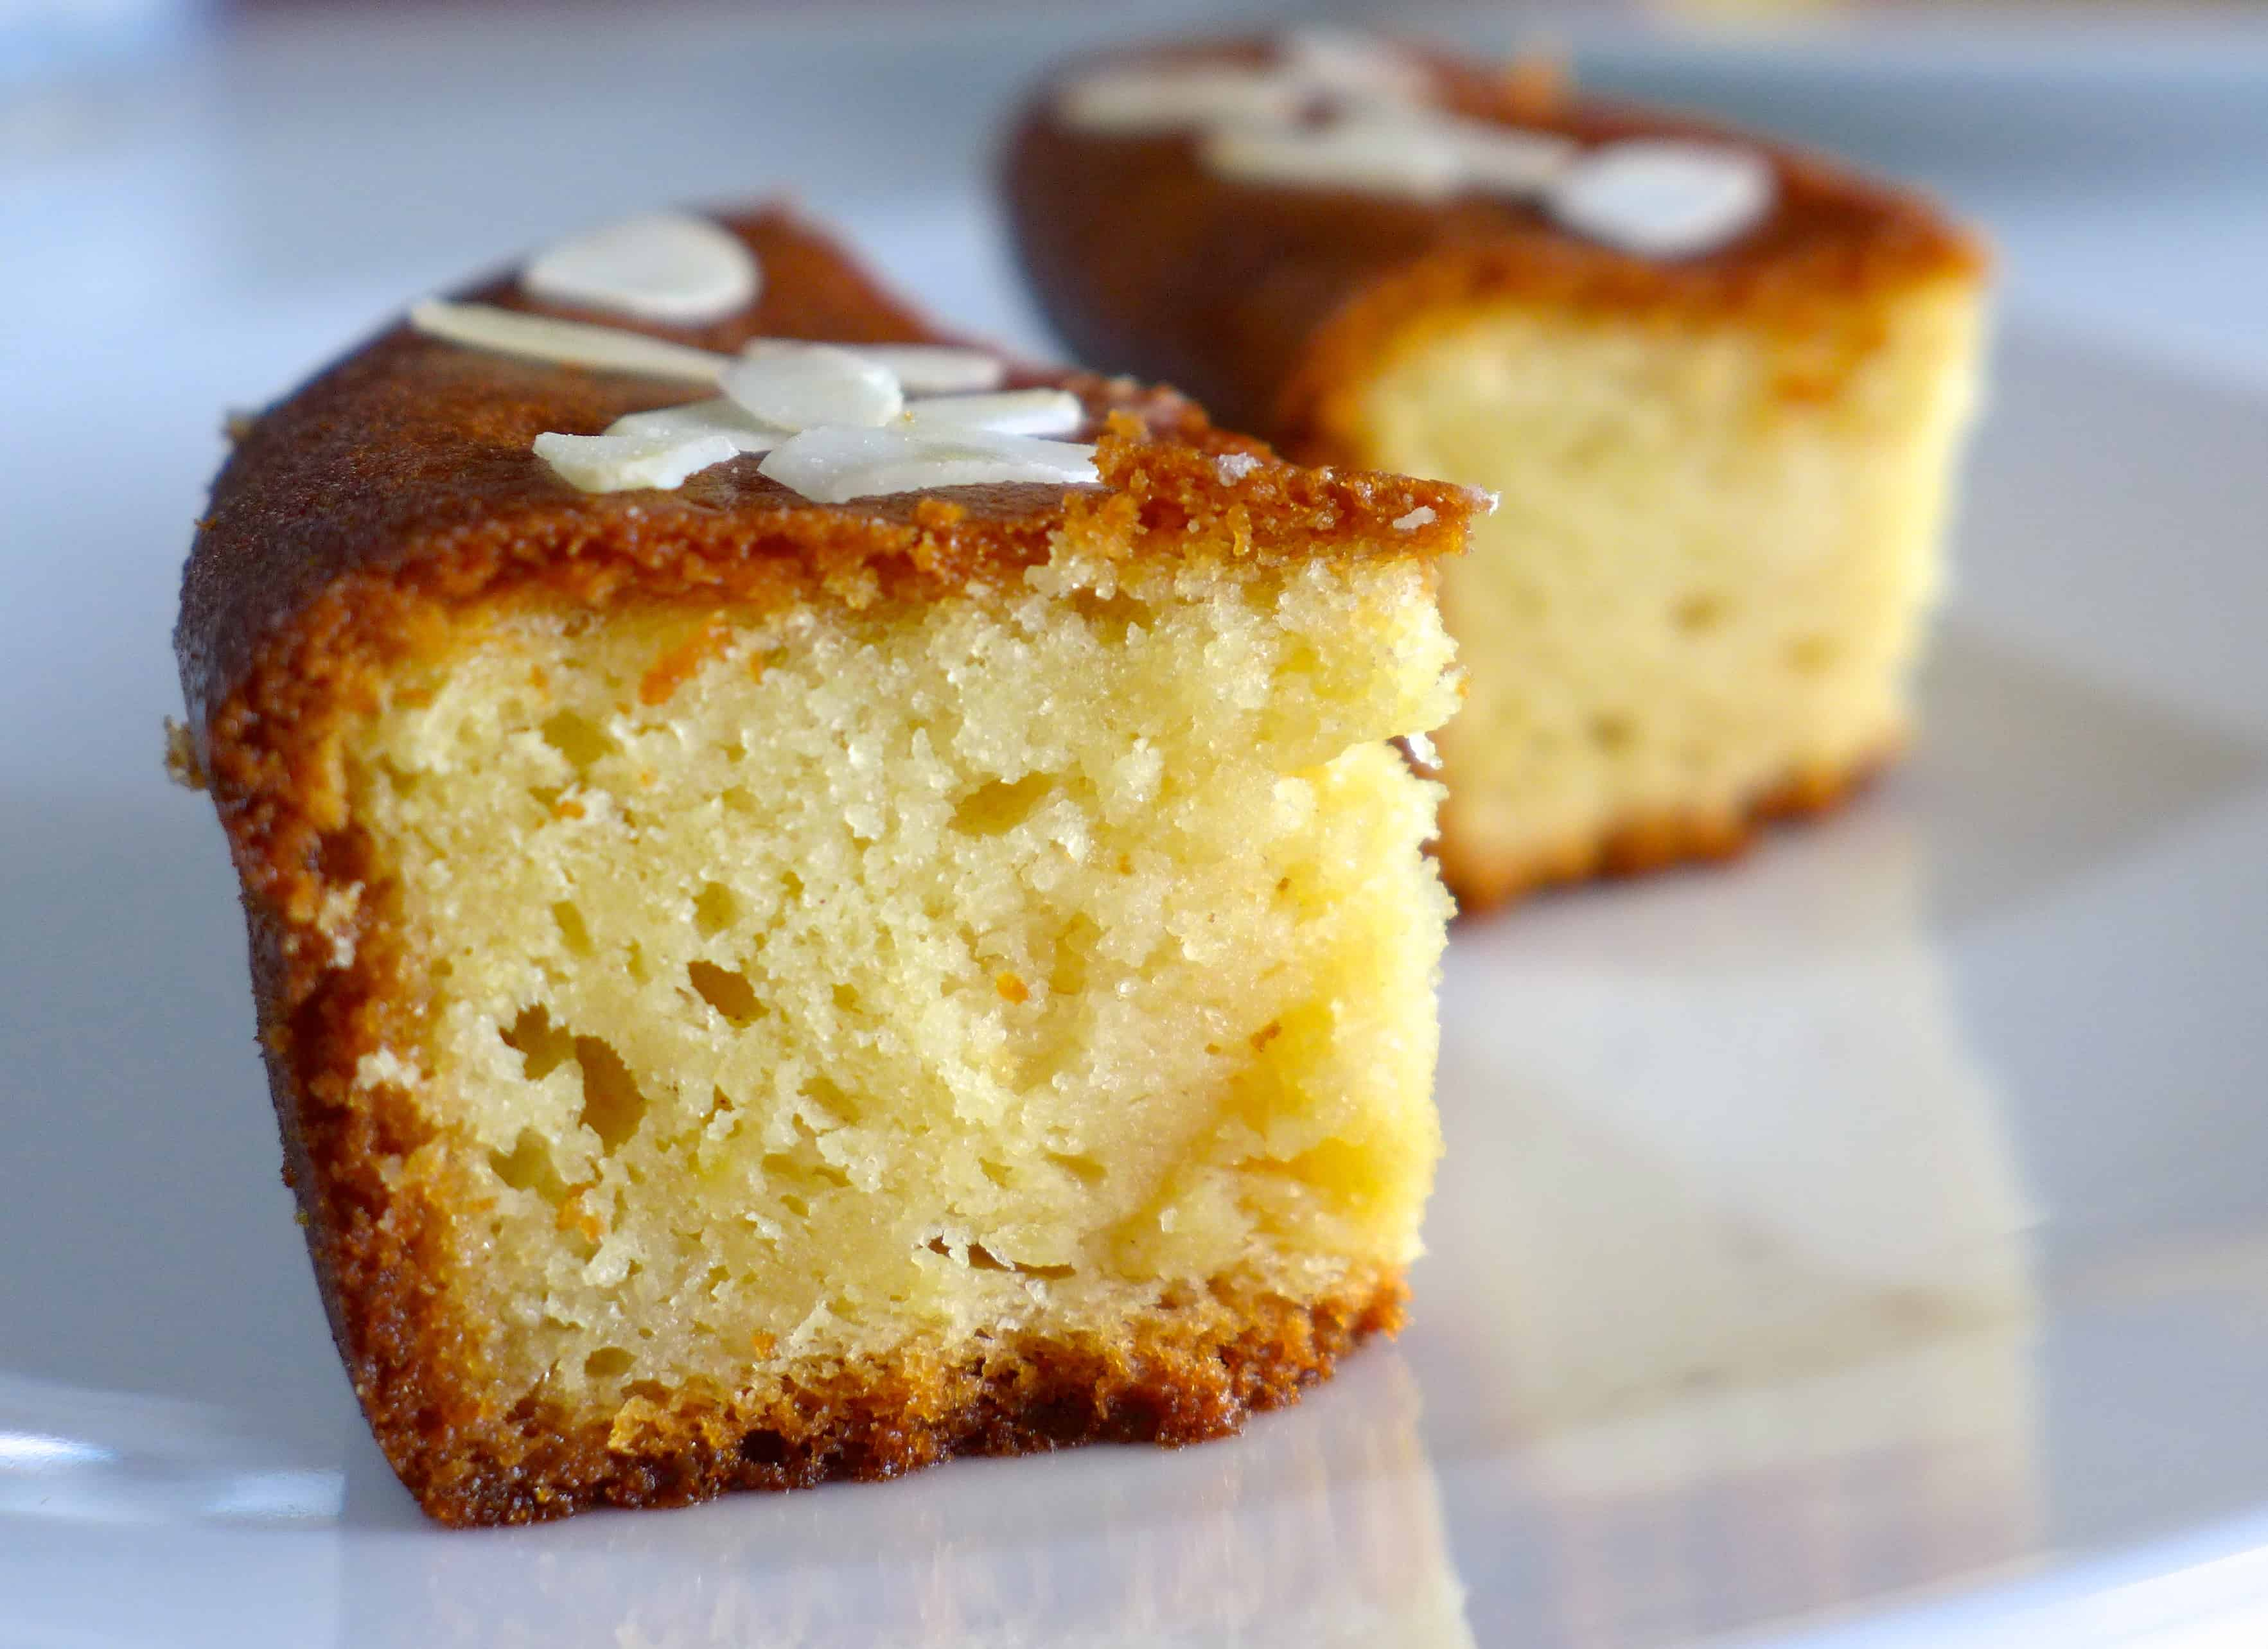 greek yogurt cake yogurt cake soaked in syrup recipe yiaourtopita 4606